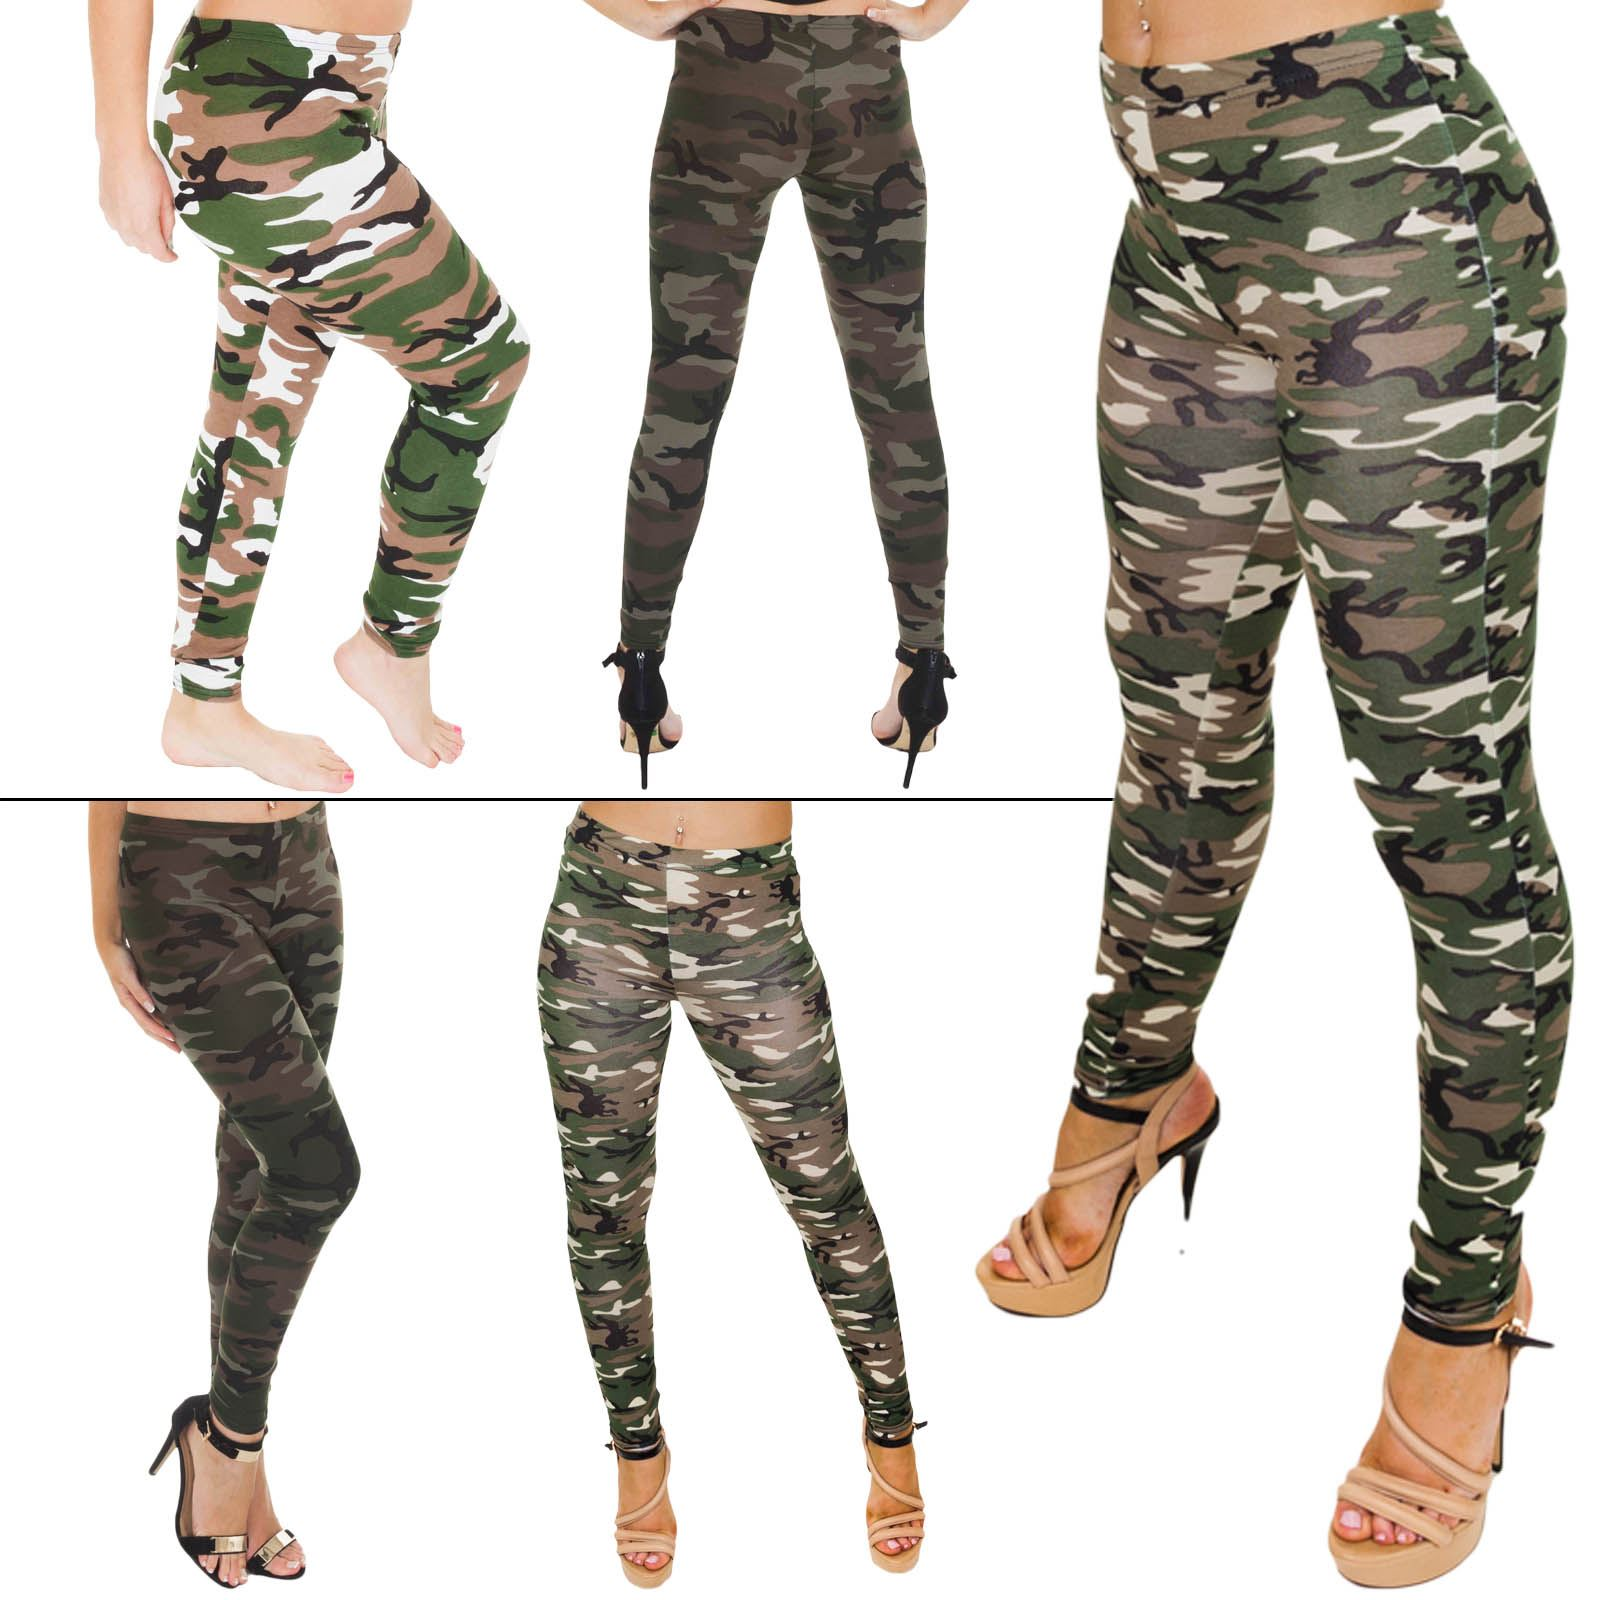 WOMENS CAMOUFLAGE ARMY PRINT LEGGINGS MILITARY LADIES PLUS SIZE VISCOSE COSTUME